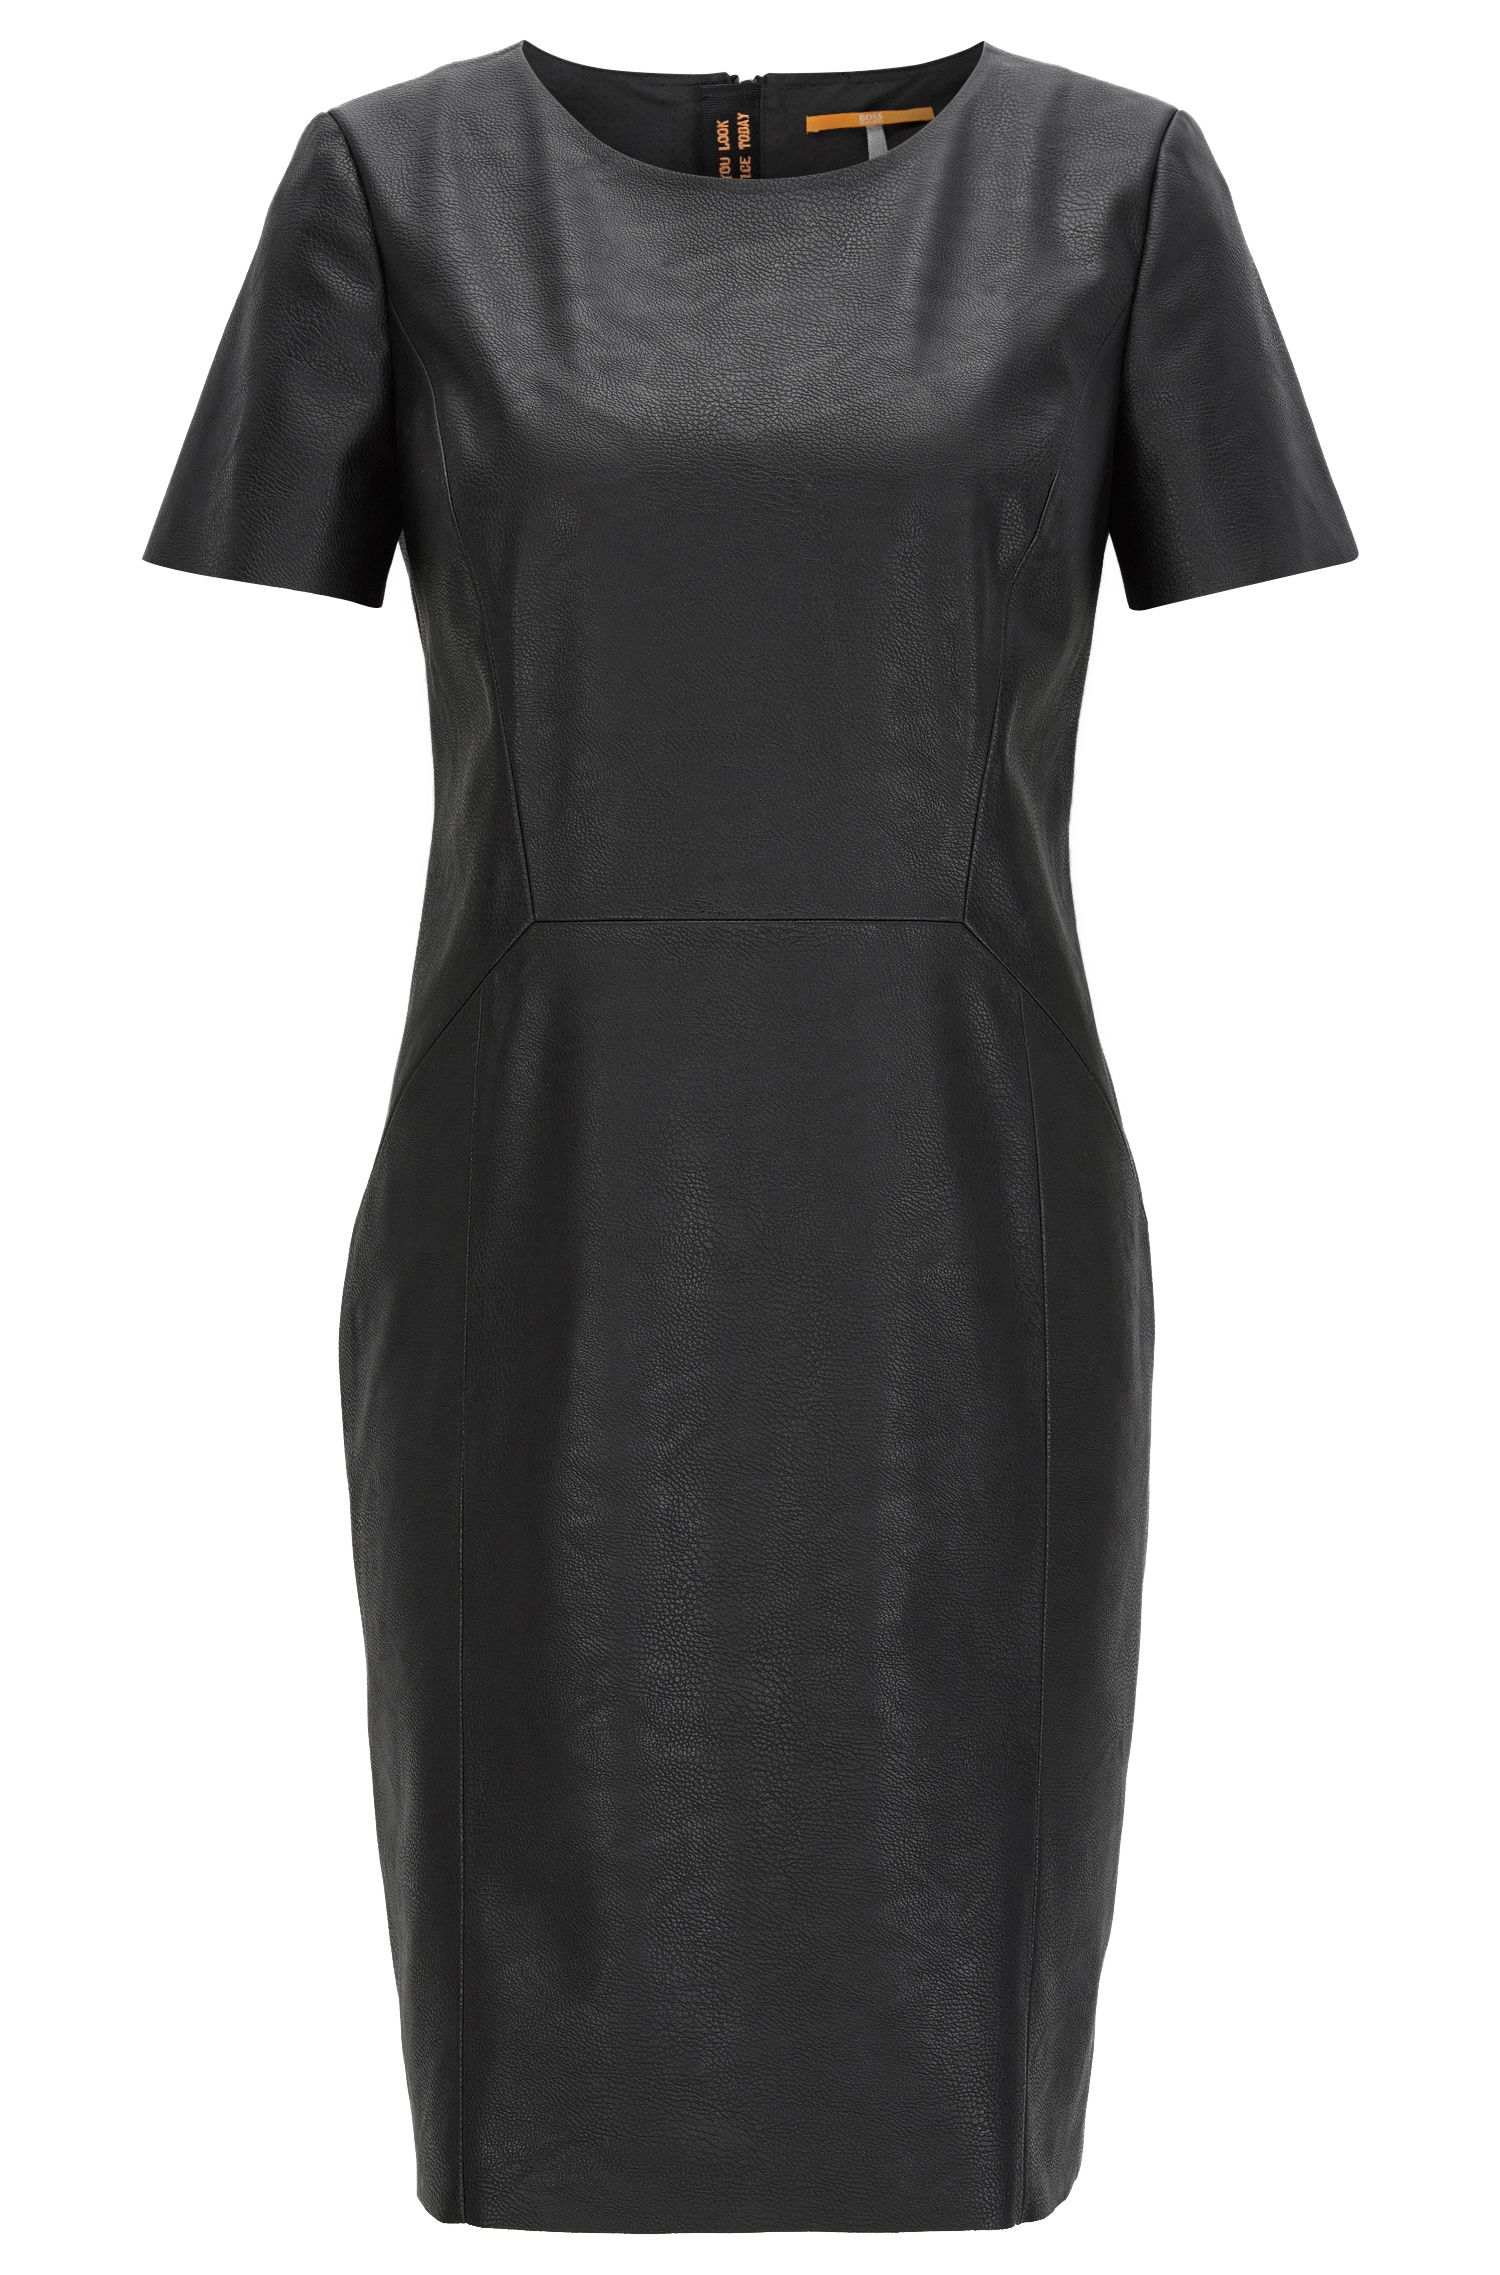 Short-sleeved faux-leather shift dress